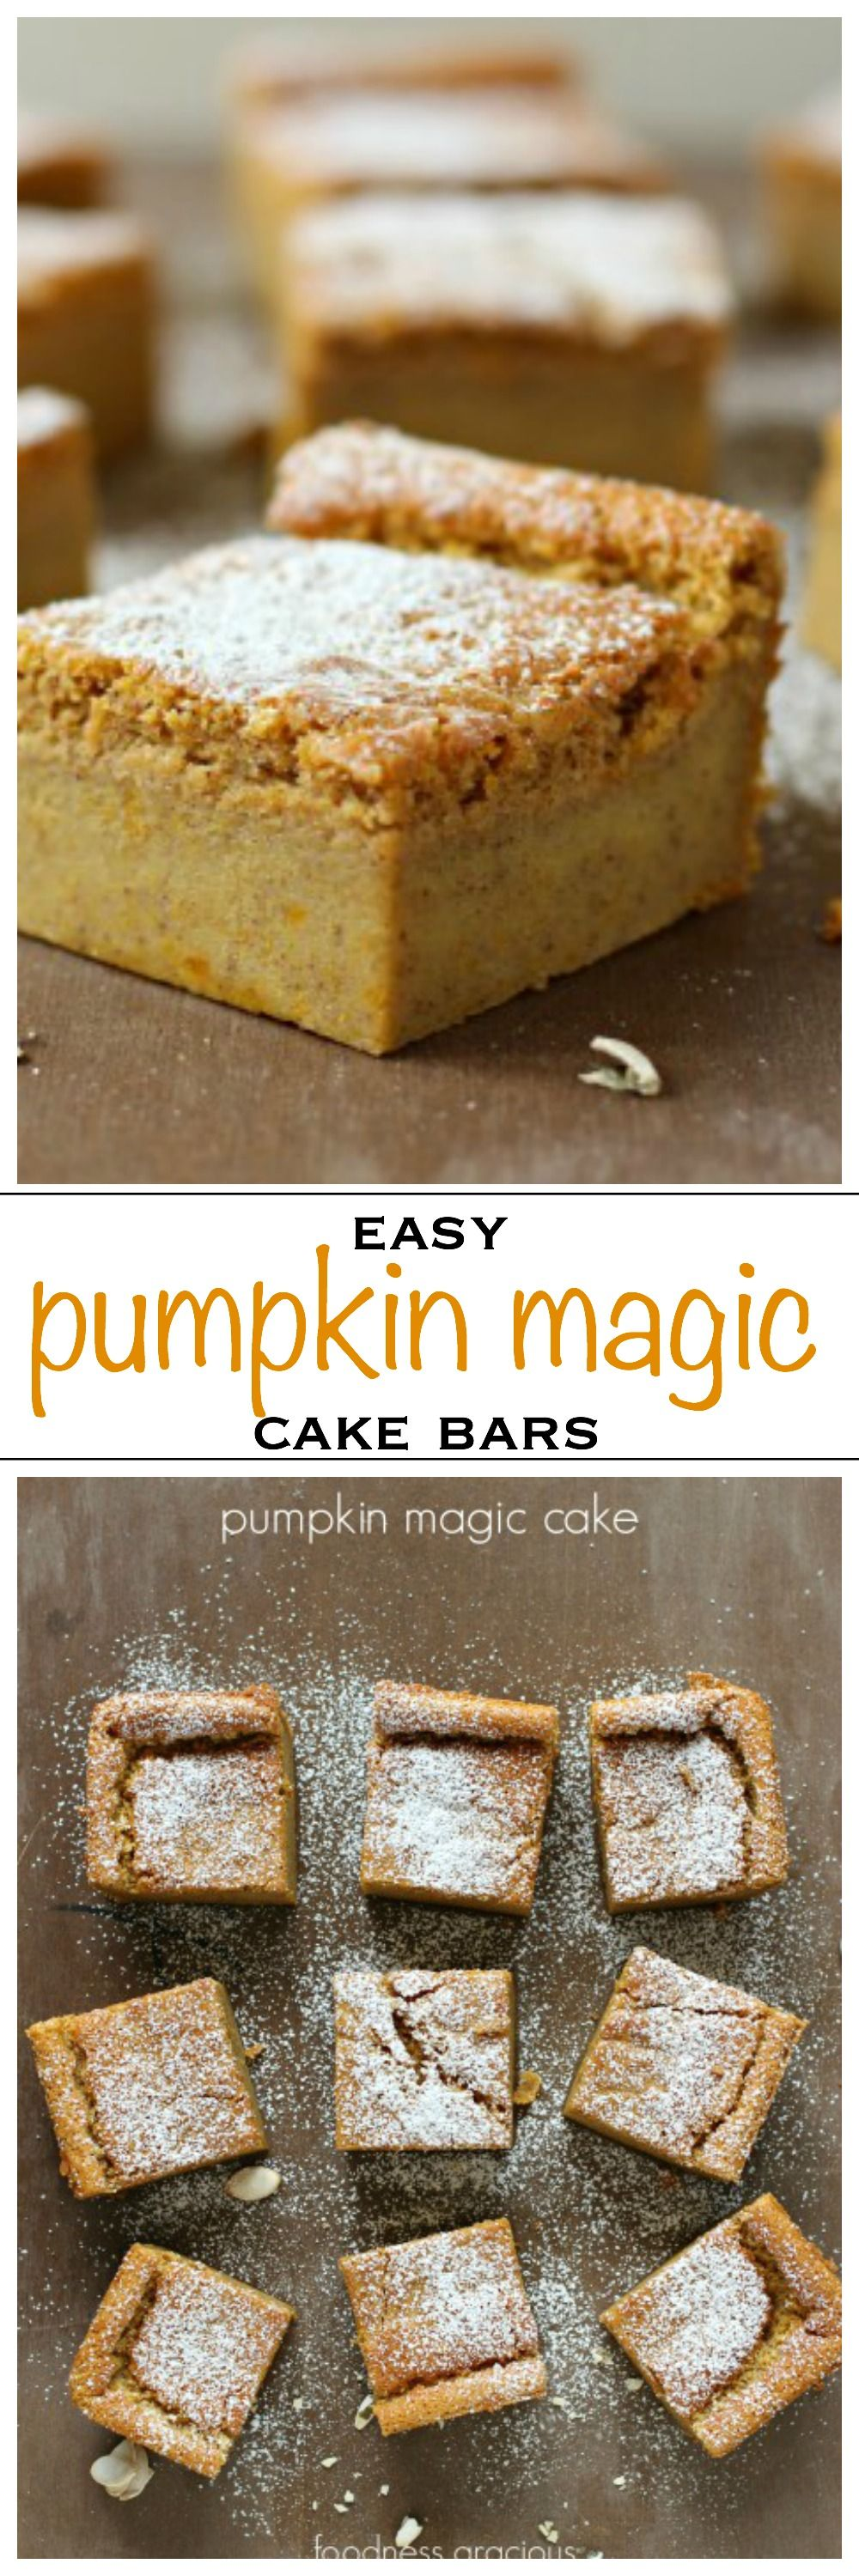 Pumpkin magic cake light and creamy with layers of texture pumpkin magic cake light and creamy with layers of texture foodness gracious aloadofball Image collections